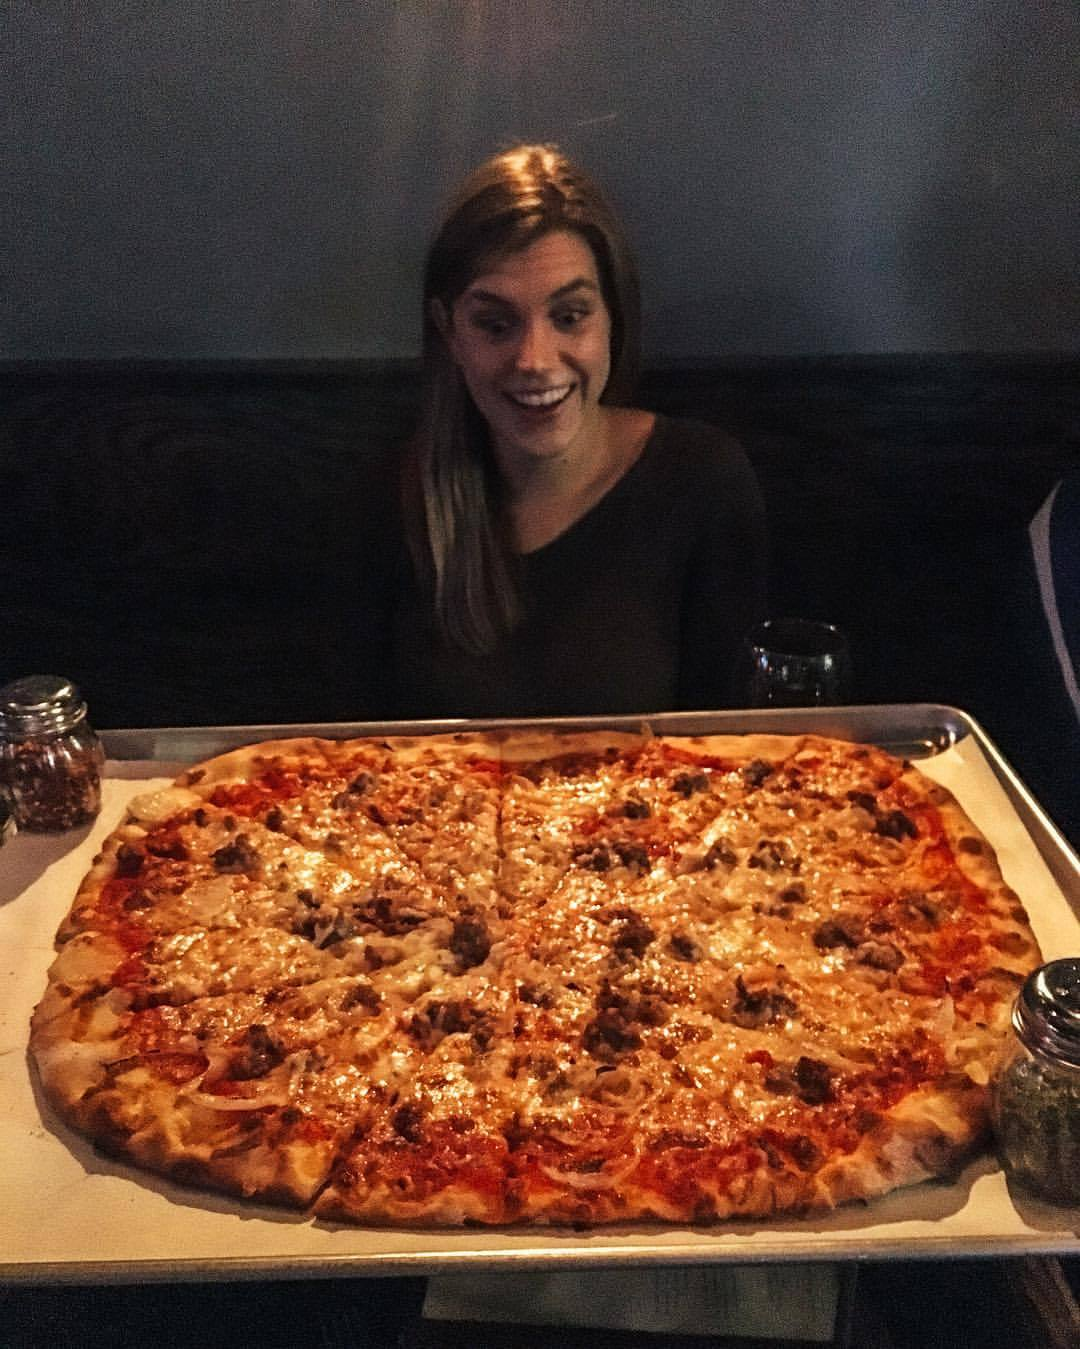 Just a girl and her pizza  (at Piece Pizzeria & Brewery)